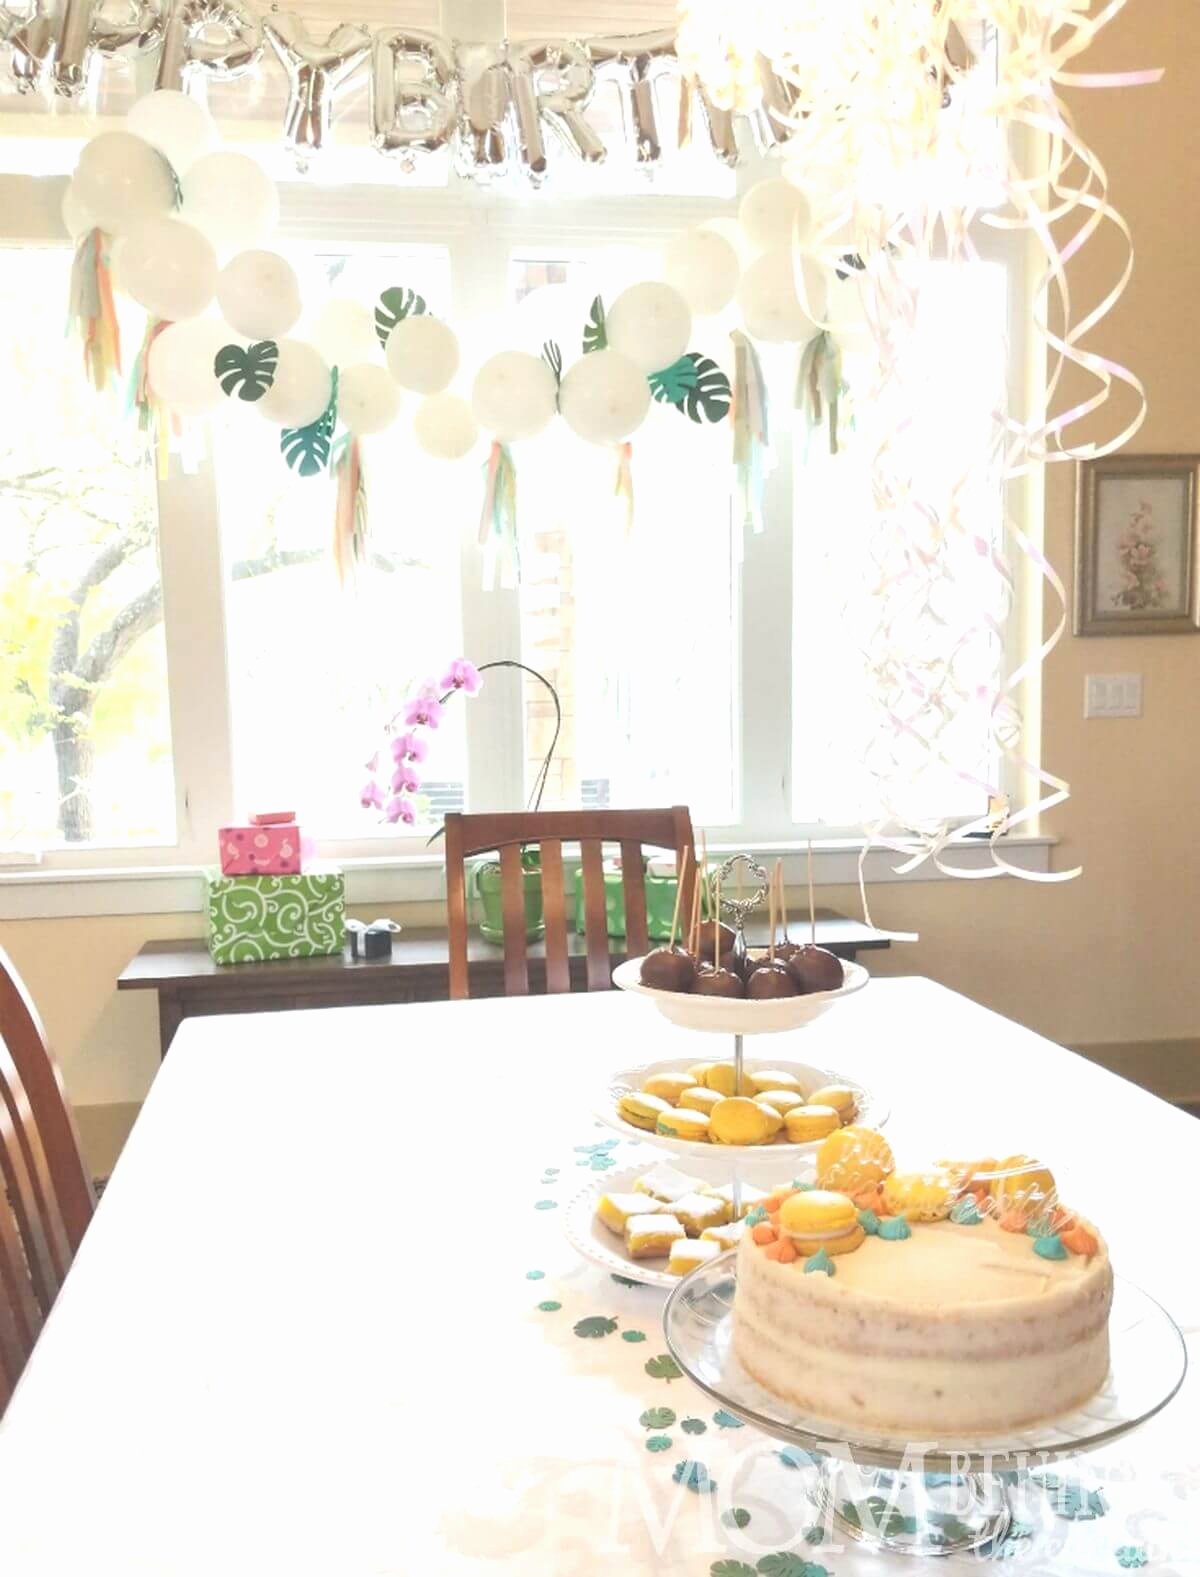 18th Birthday Decoration Ideas for Daughter Awesome Making An 18th Birthday Special During Covid Quarantine